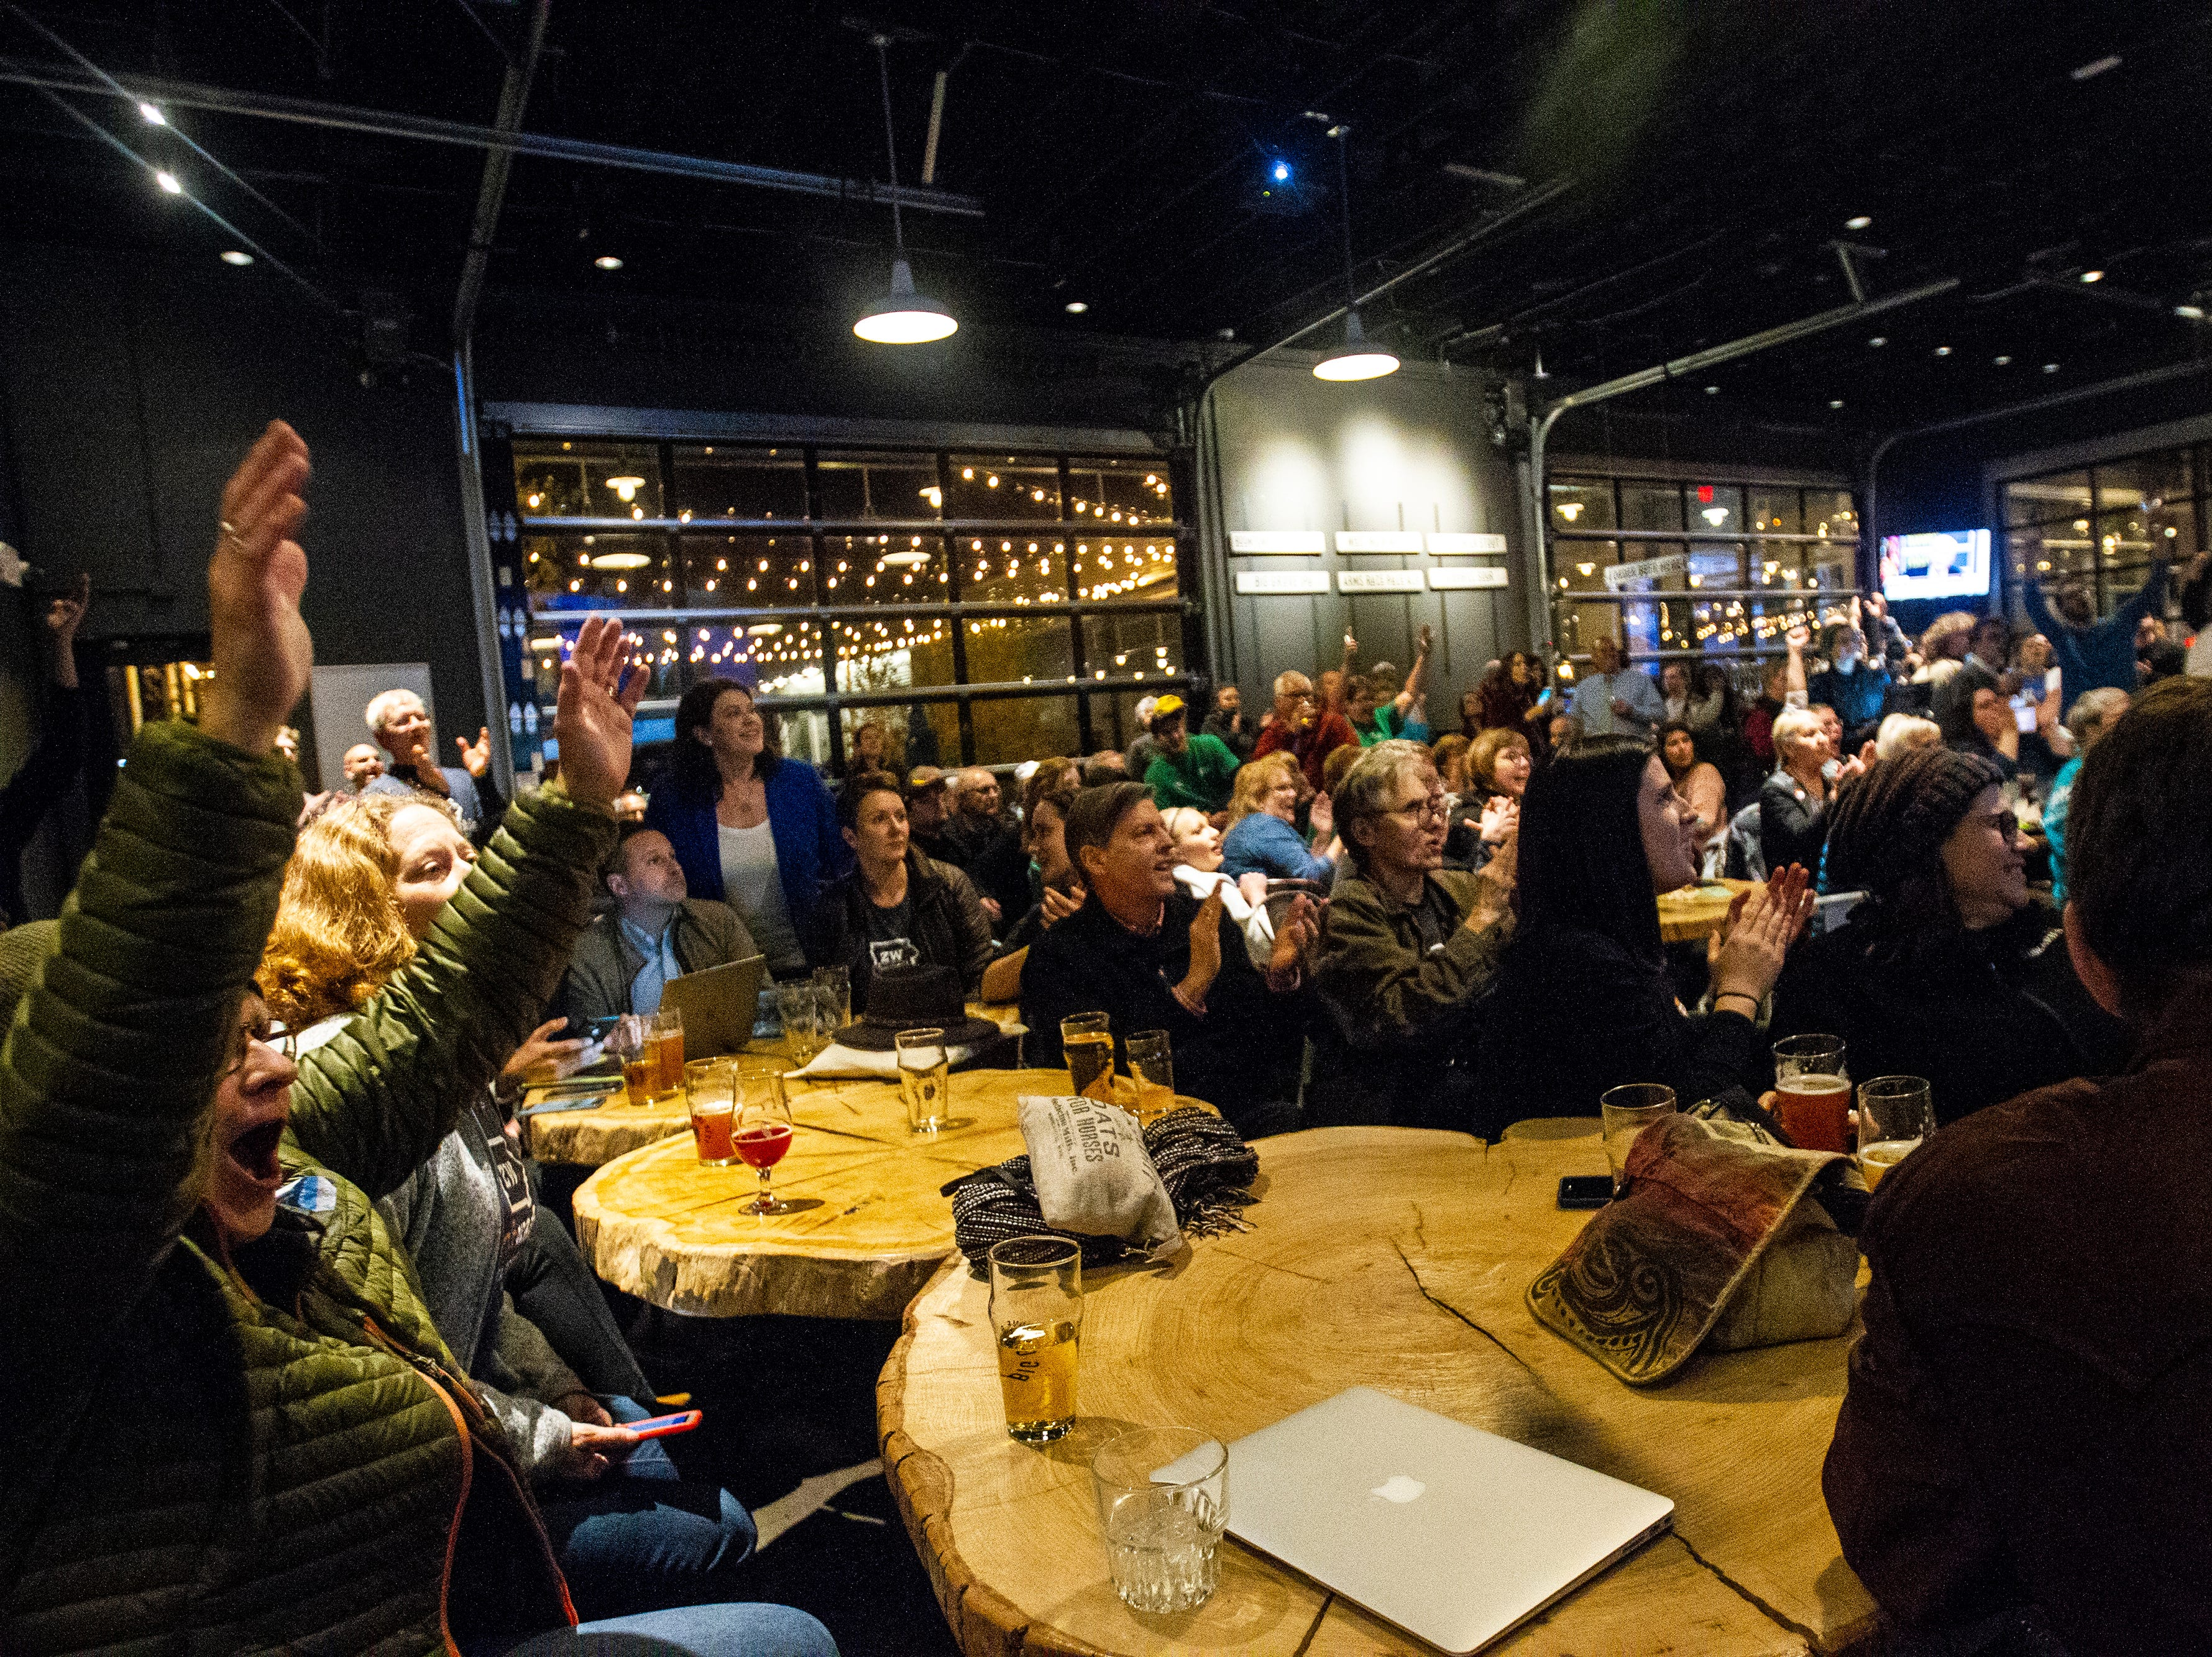 Johnson County Democrats cheer as results come in during their party on Tuesday, Nov. 6, 2018, at Big Grove Brewery in Iowa City.